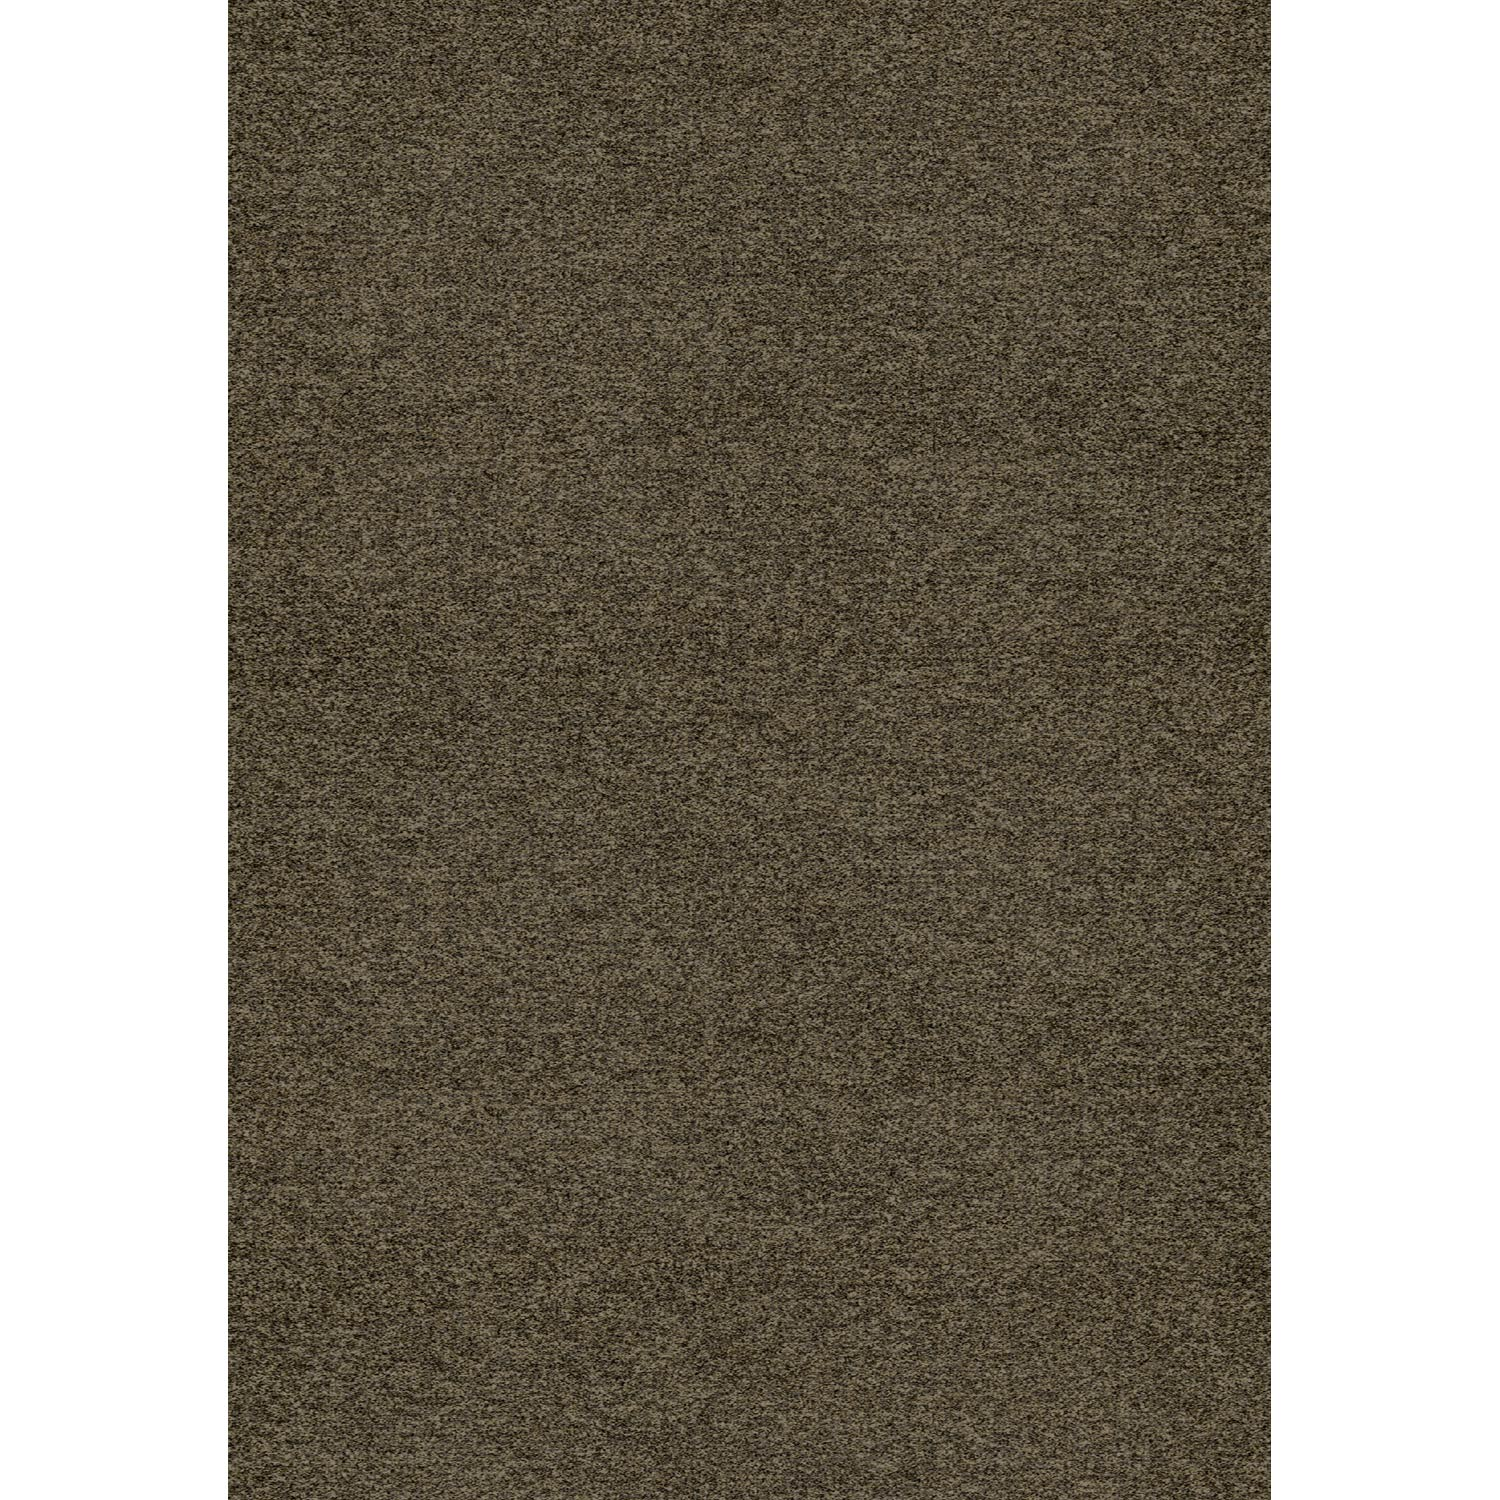 tapis shaggy lizzy marron 115x60 cm leroy merlin. Black Bedroom Furniture Sets. Home Design Ideas